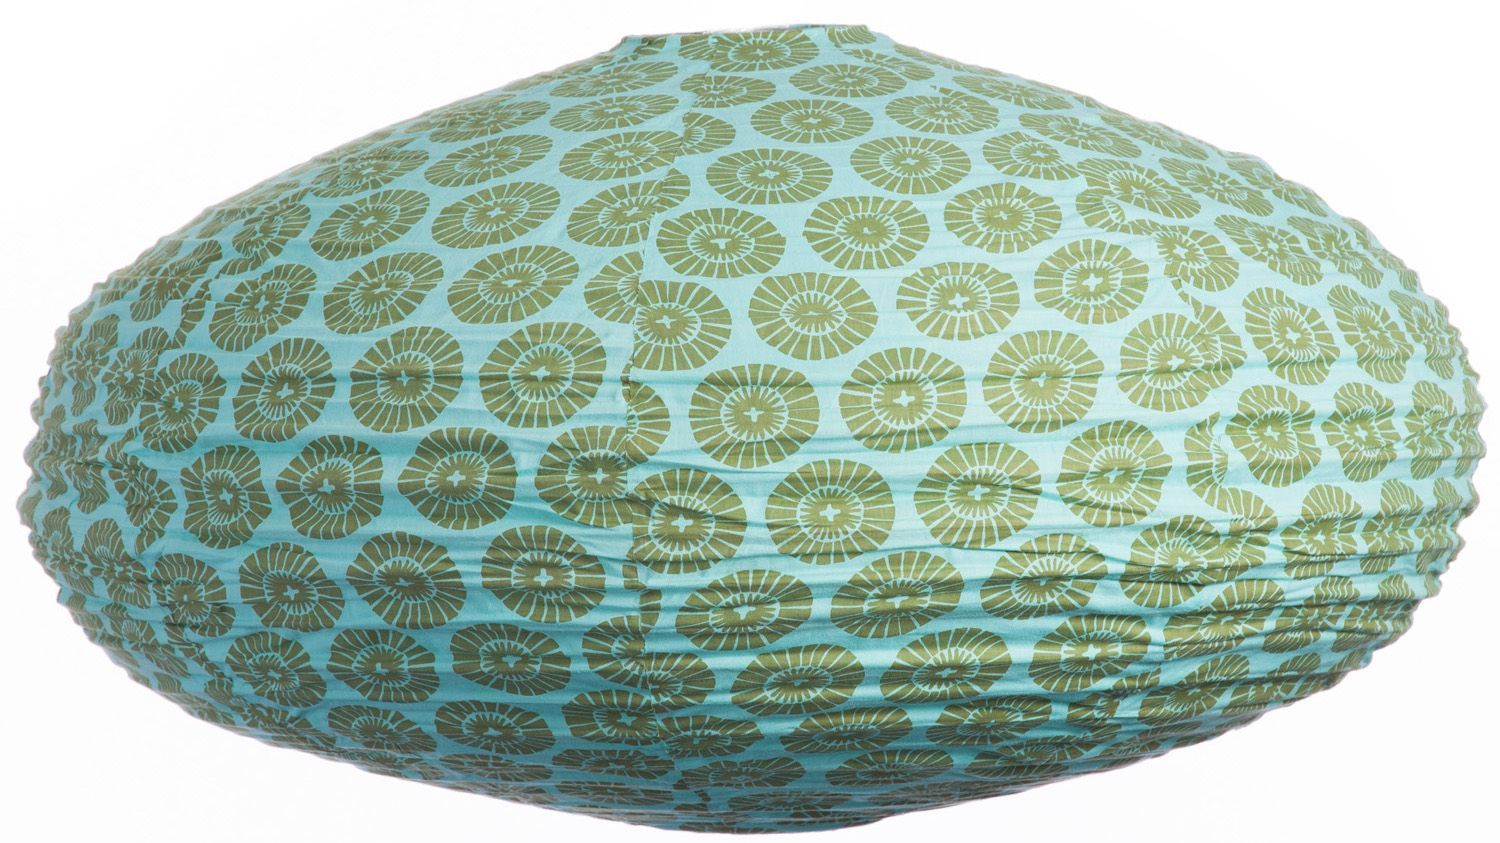 Suspension ovale 80cm Oki Flower aqua & olive by Gong